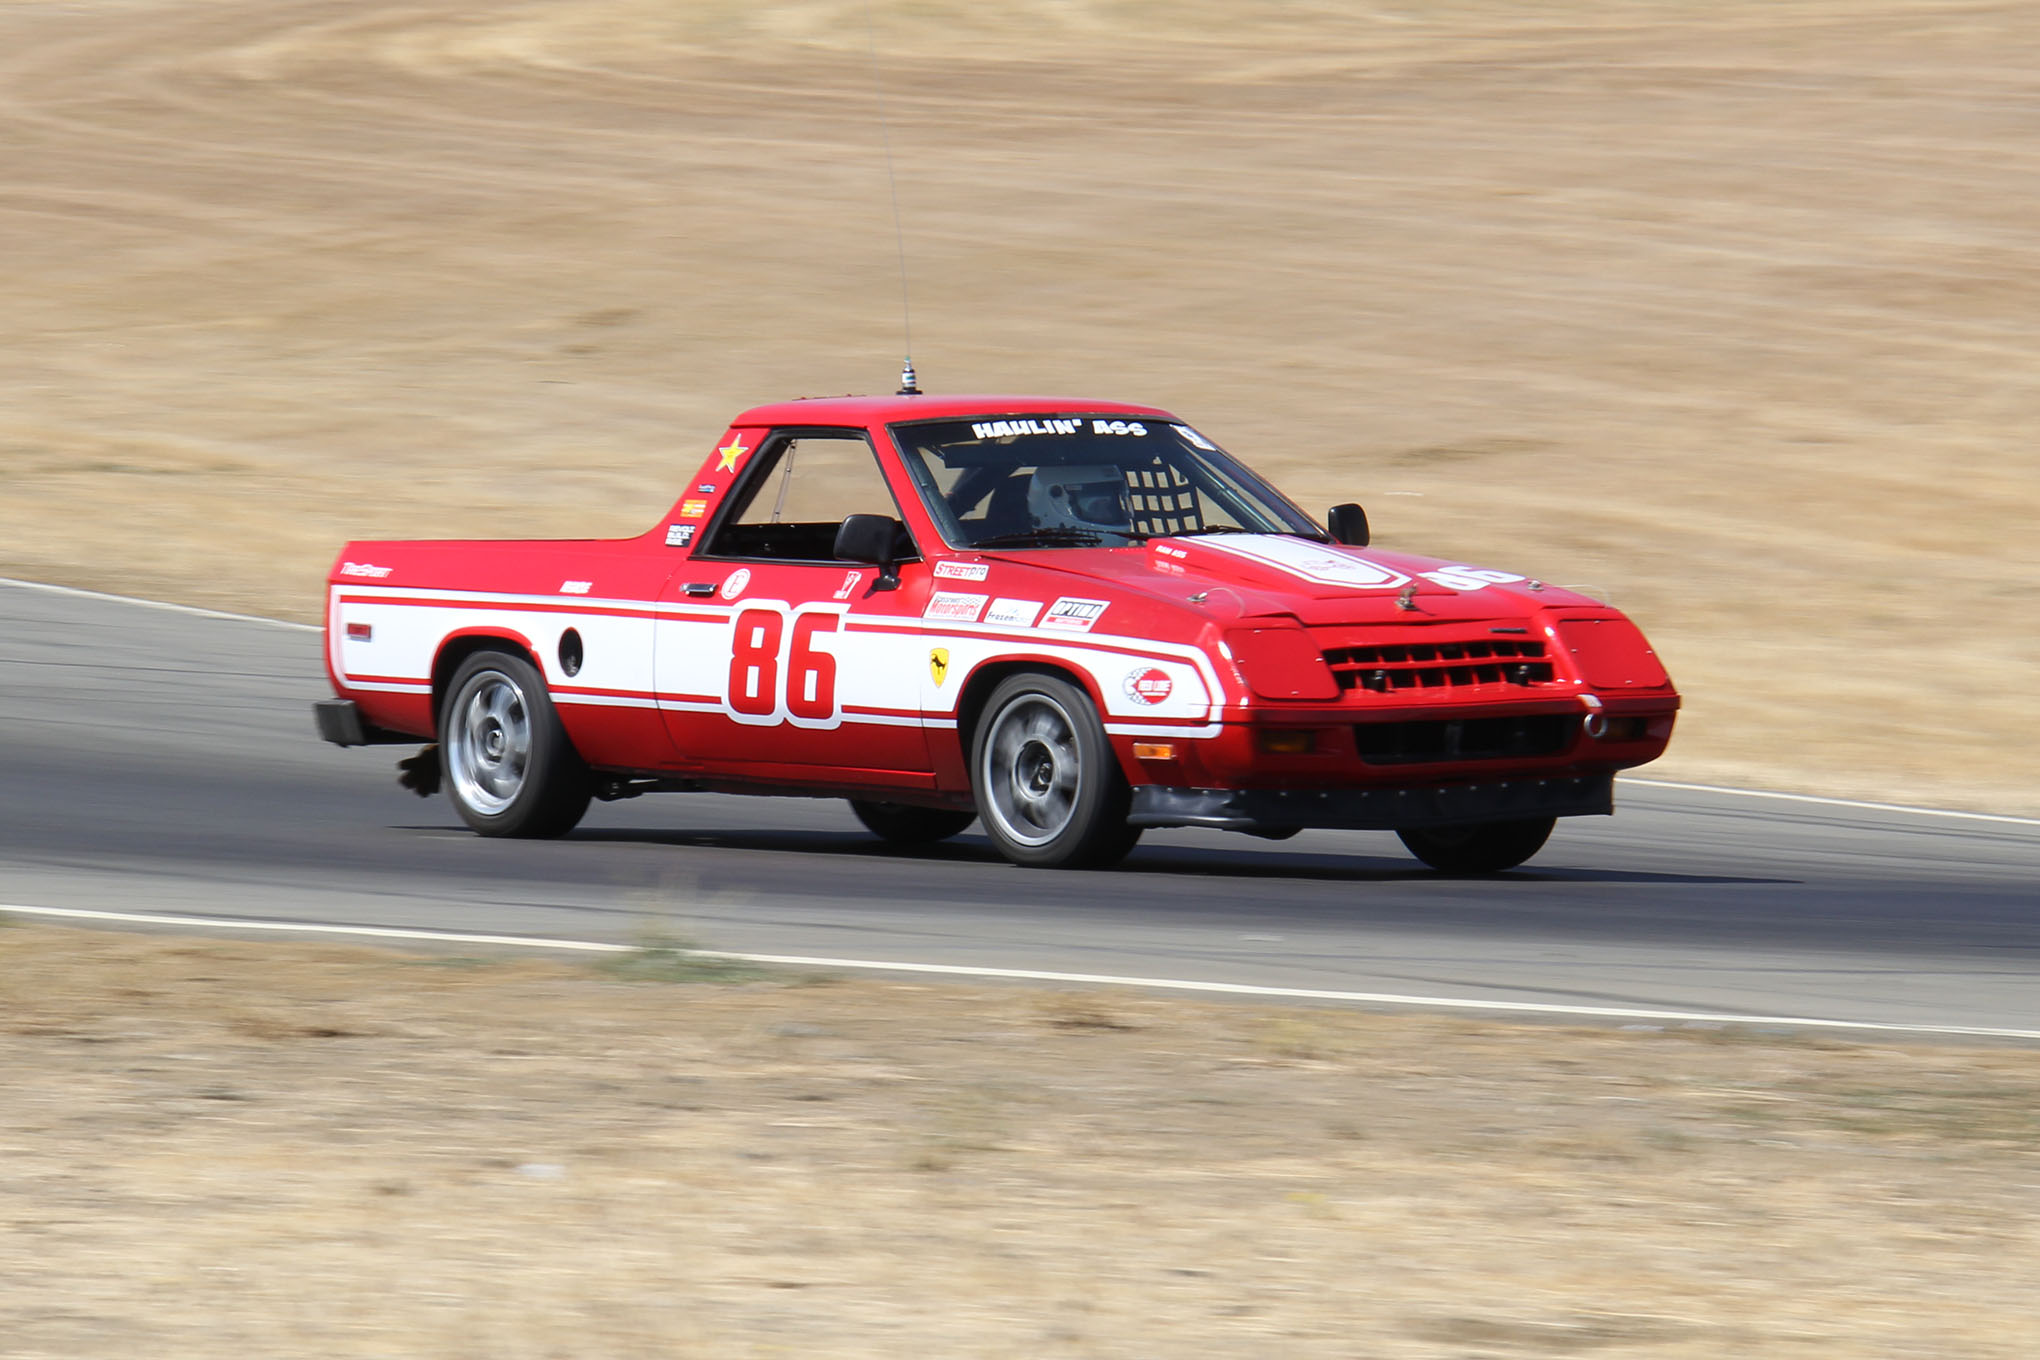 Team Hauling Ass Plymouth Scamp 24 Hours of Lemons car